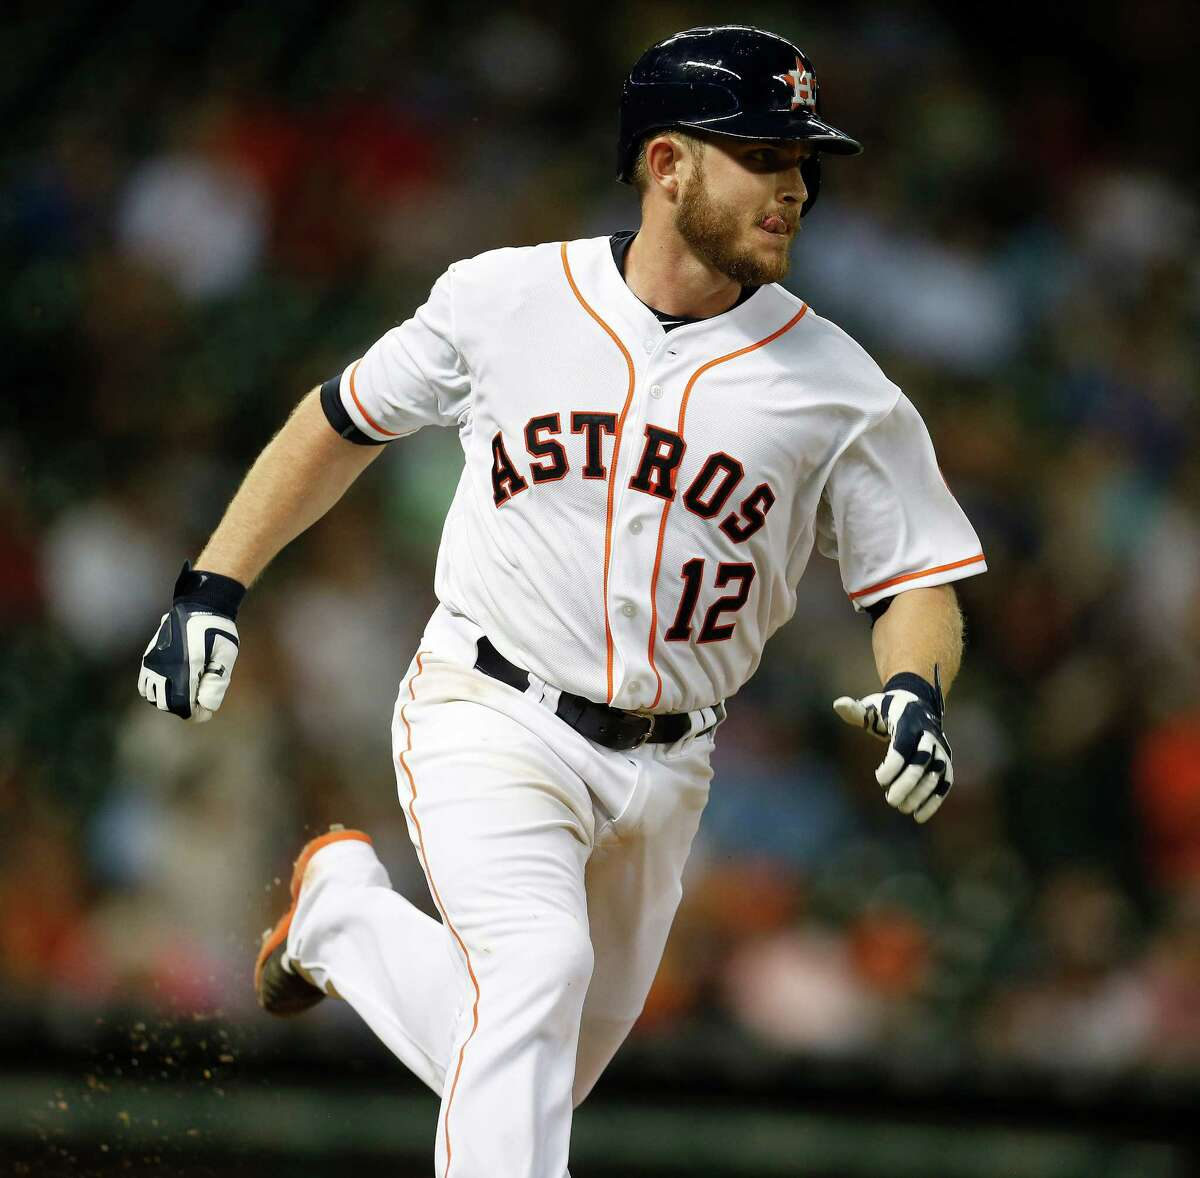 Houston Astros catcher Max Stassi (12) runs to first on his RBI single during the second inning of an MLB baseball game at Minute Maid Park on Tuesday, Sept. 1, 2015.( Karen Warren / Houston Chronicle )